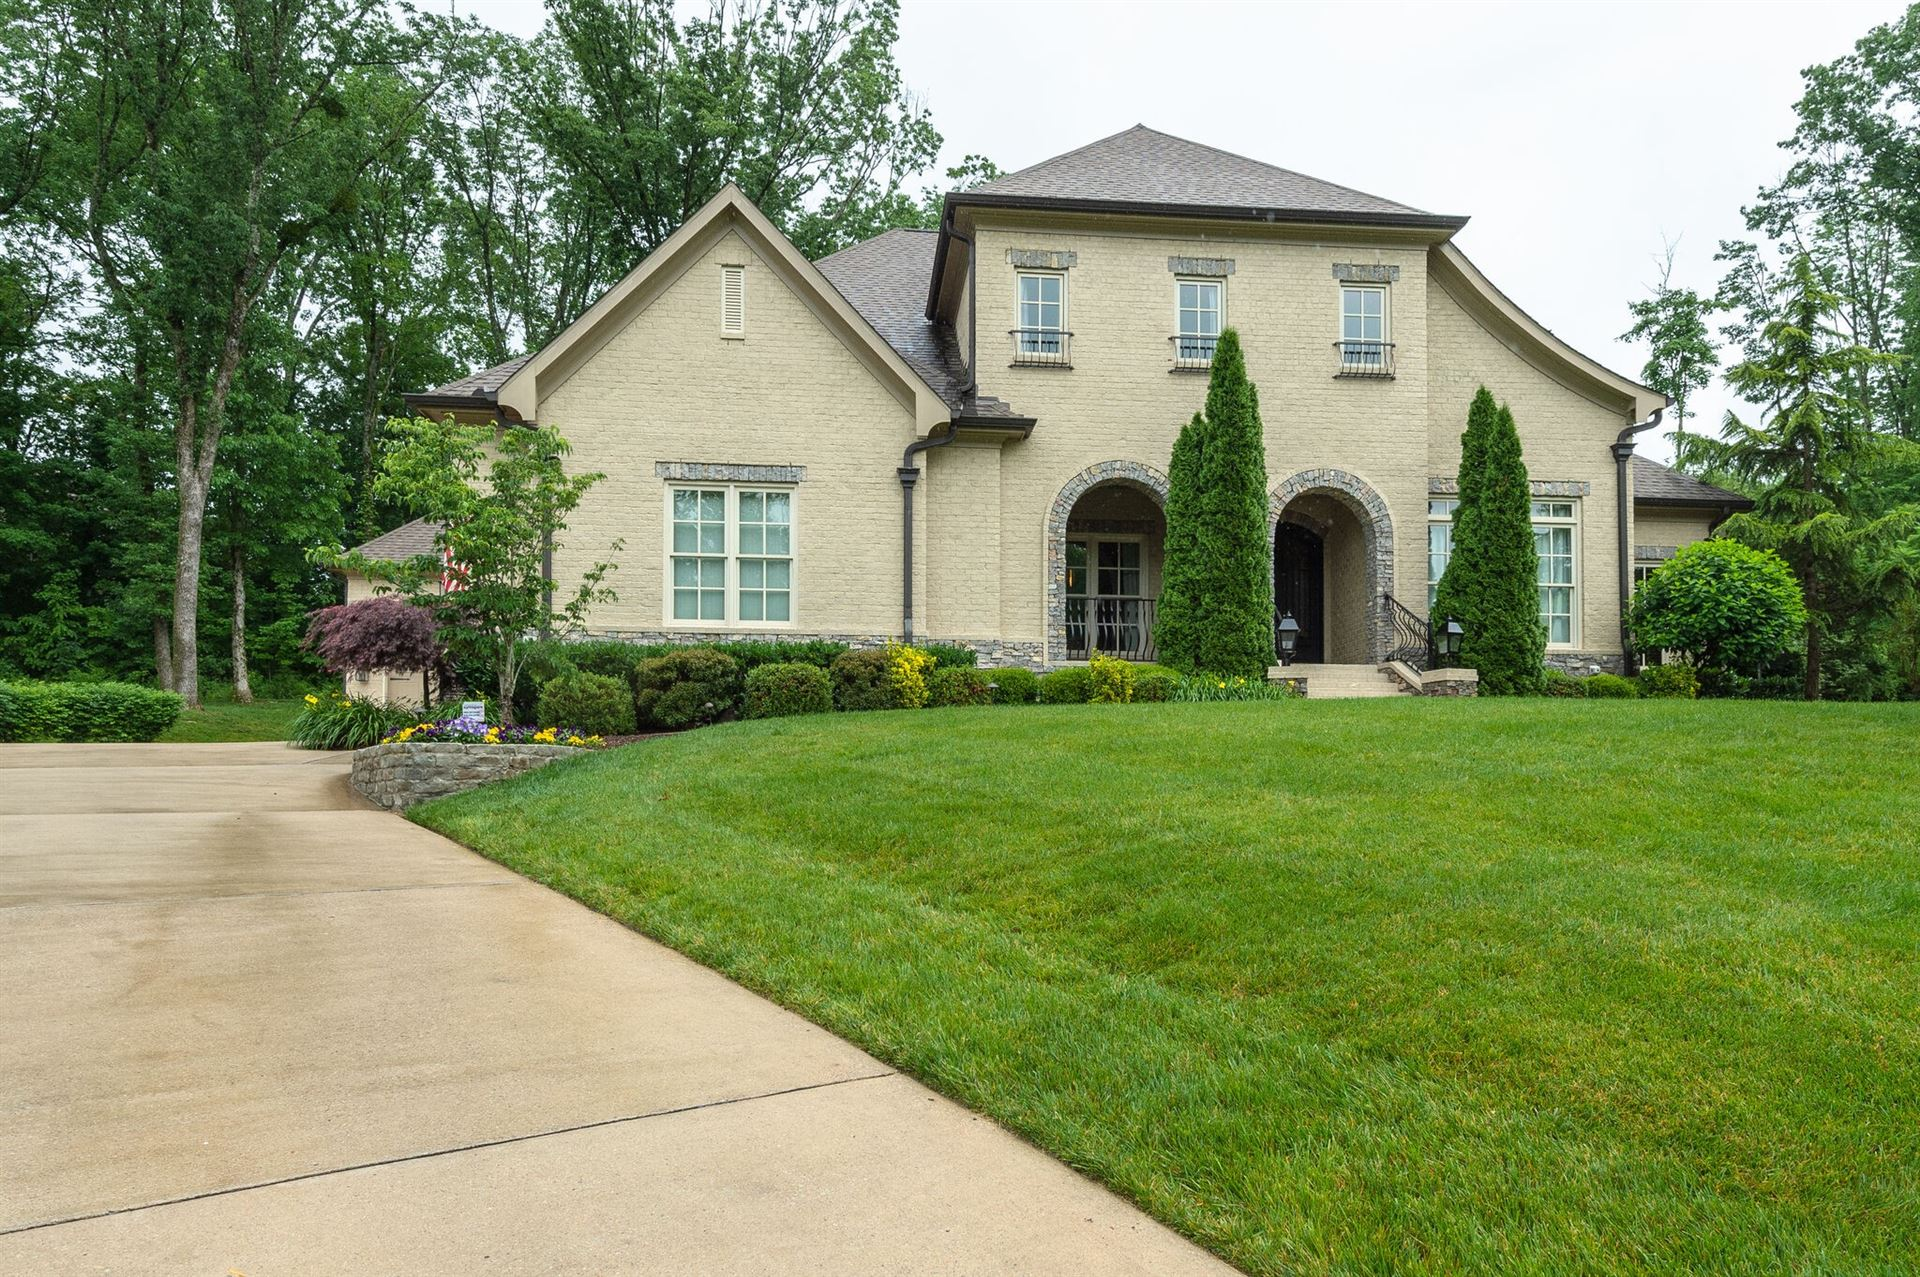 Photo of 1750 Tuscany Way, Brentwood, TN 37027 (MLS # 2155458)